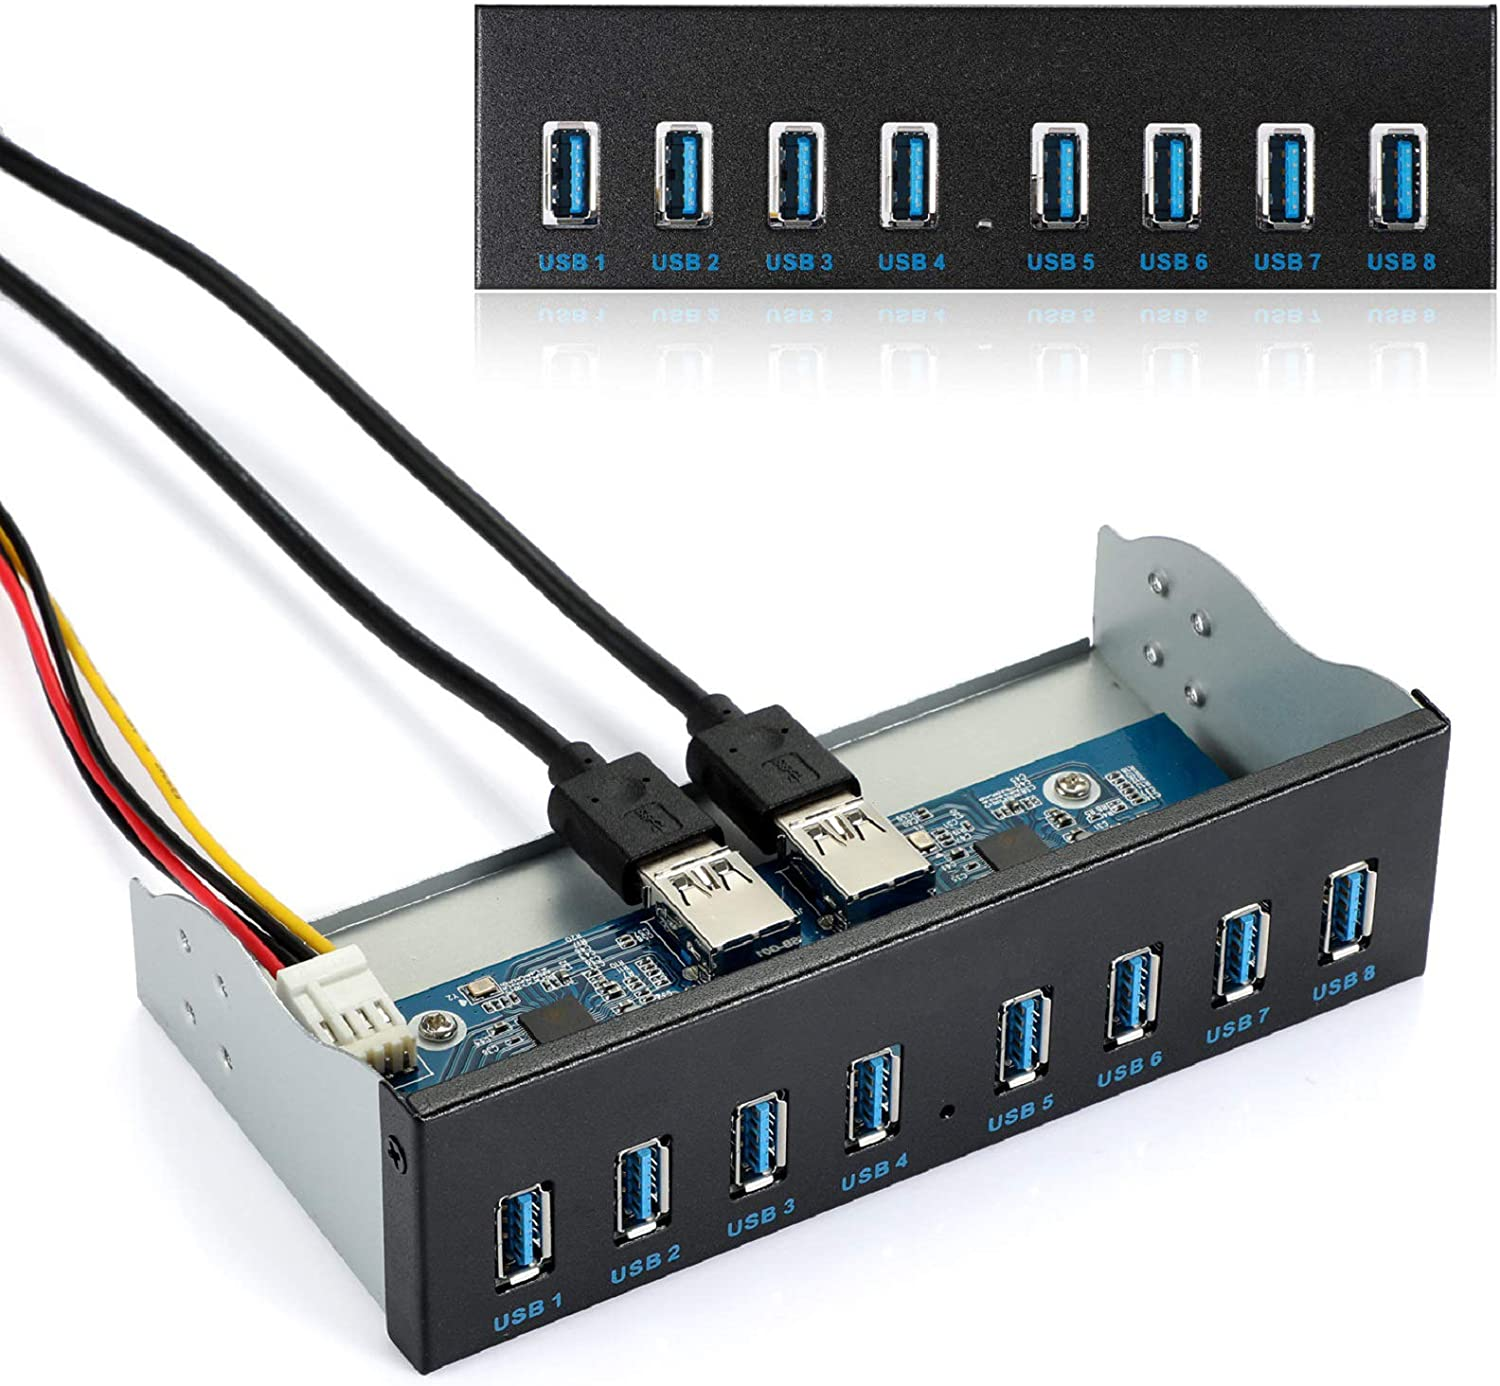 """MZHOU Front Panel USB 3.0 Hub 8 Port,19 Pin to 8 Port USB 3.0 Hub for PC, USB Flash Drives, Transfer Speed up to 5 Gbps, Fits Any 5.25"""" Computer Case Front Bay"""